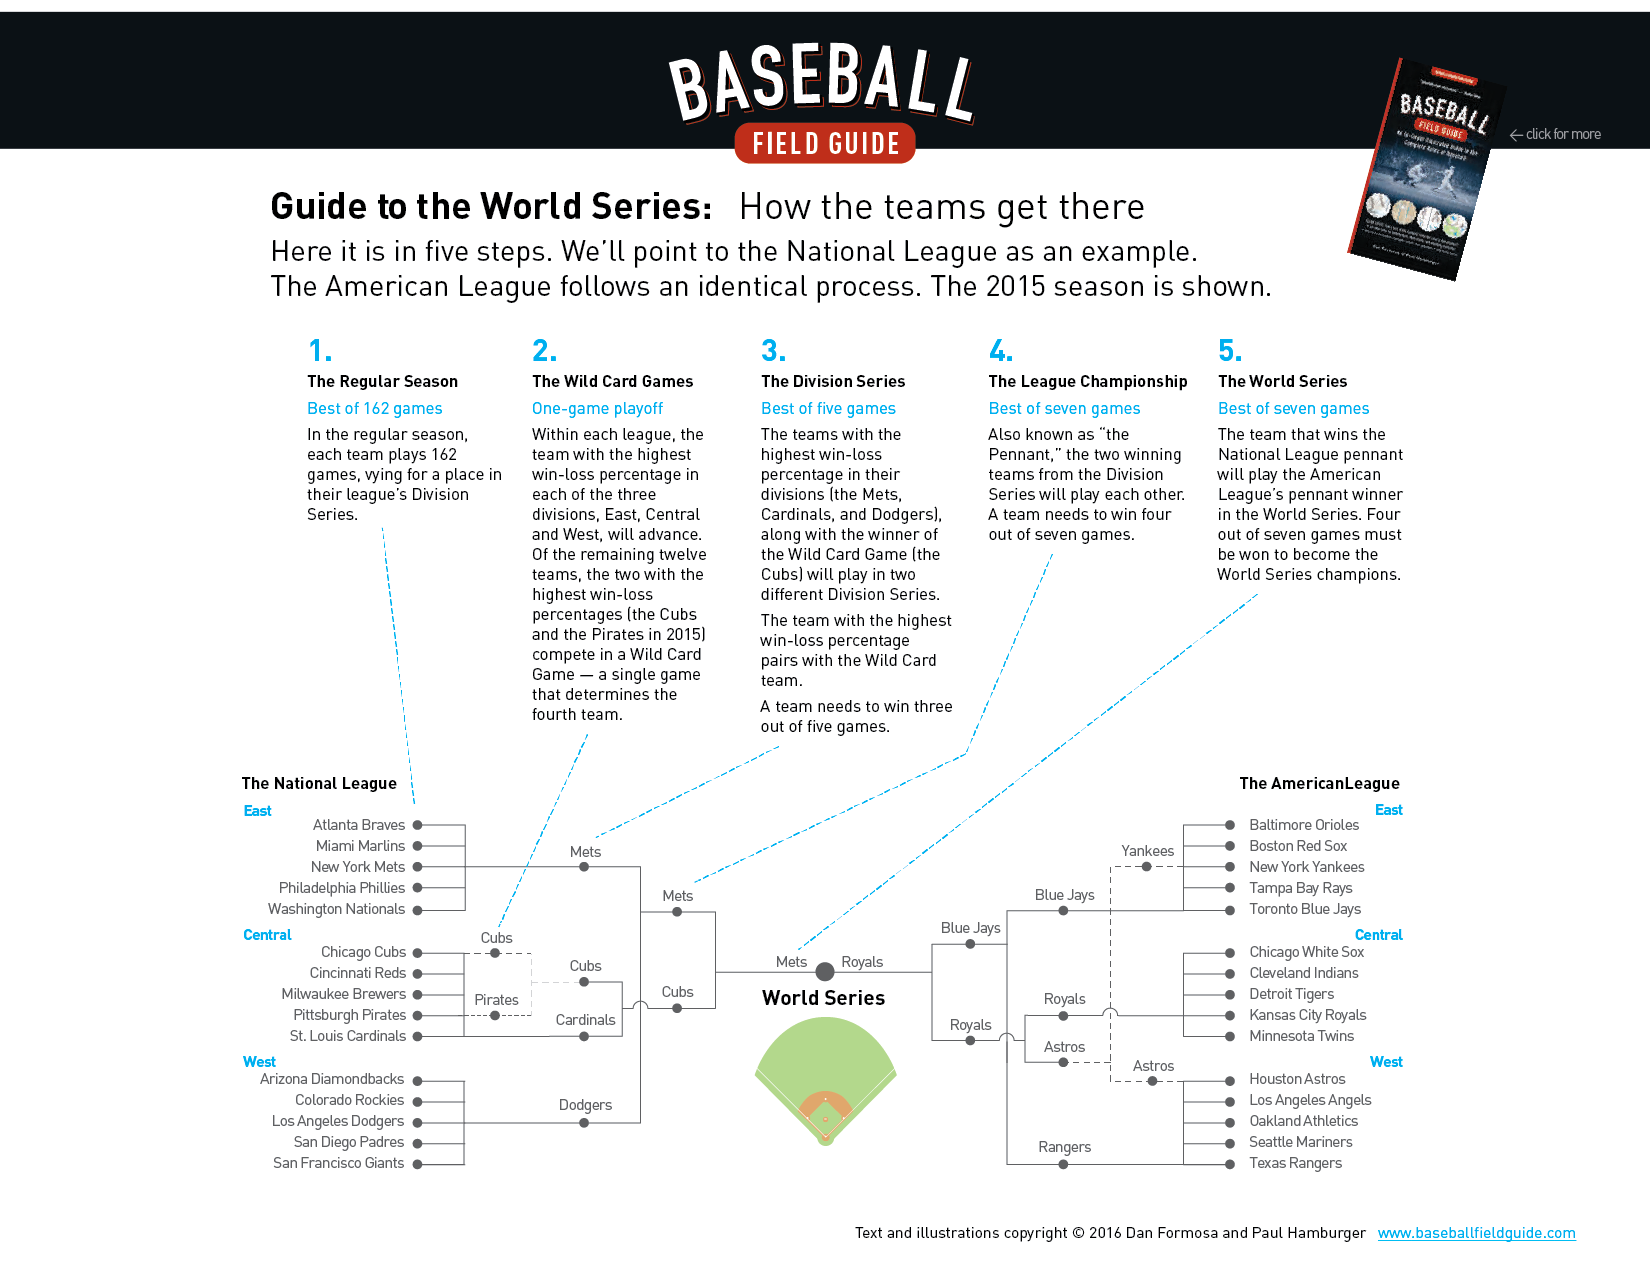 Baseball Field Guide_Guide to the World Series_150